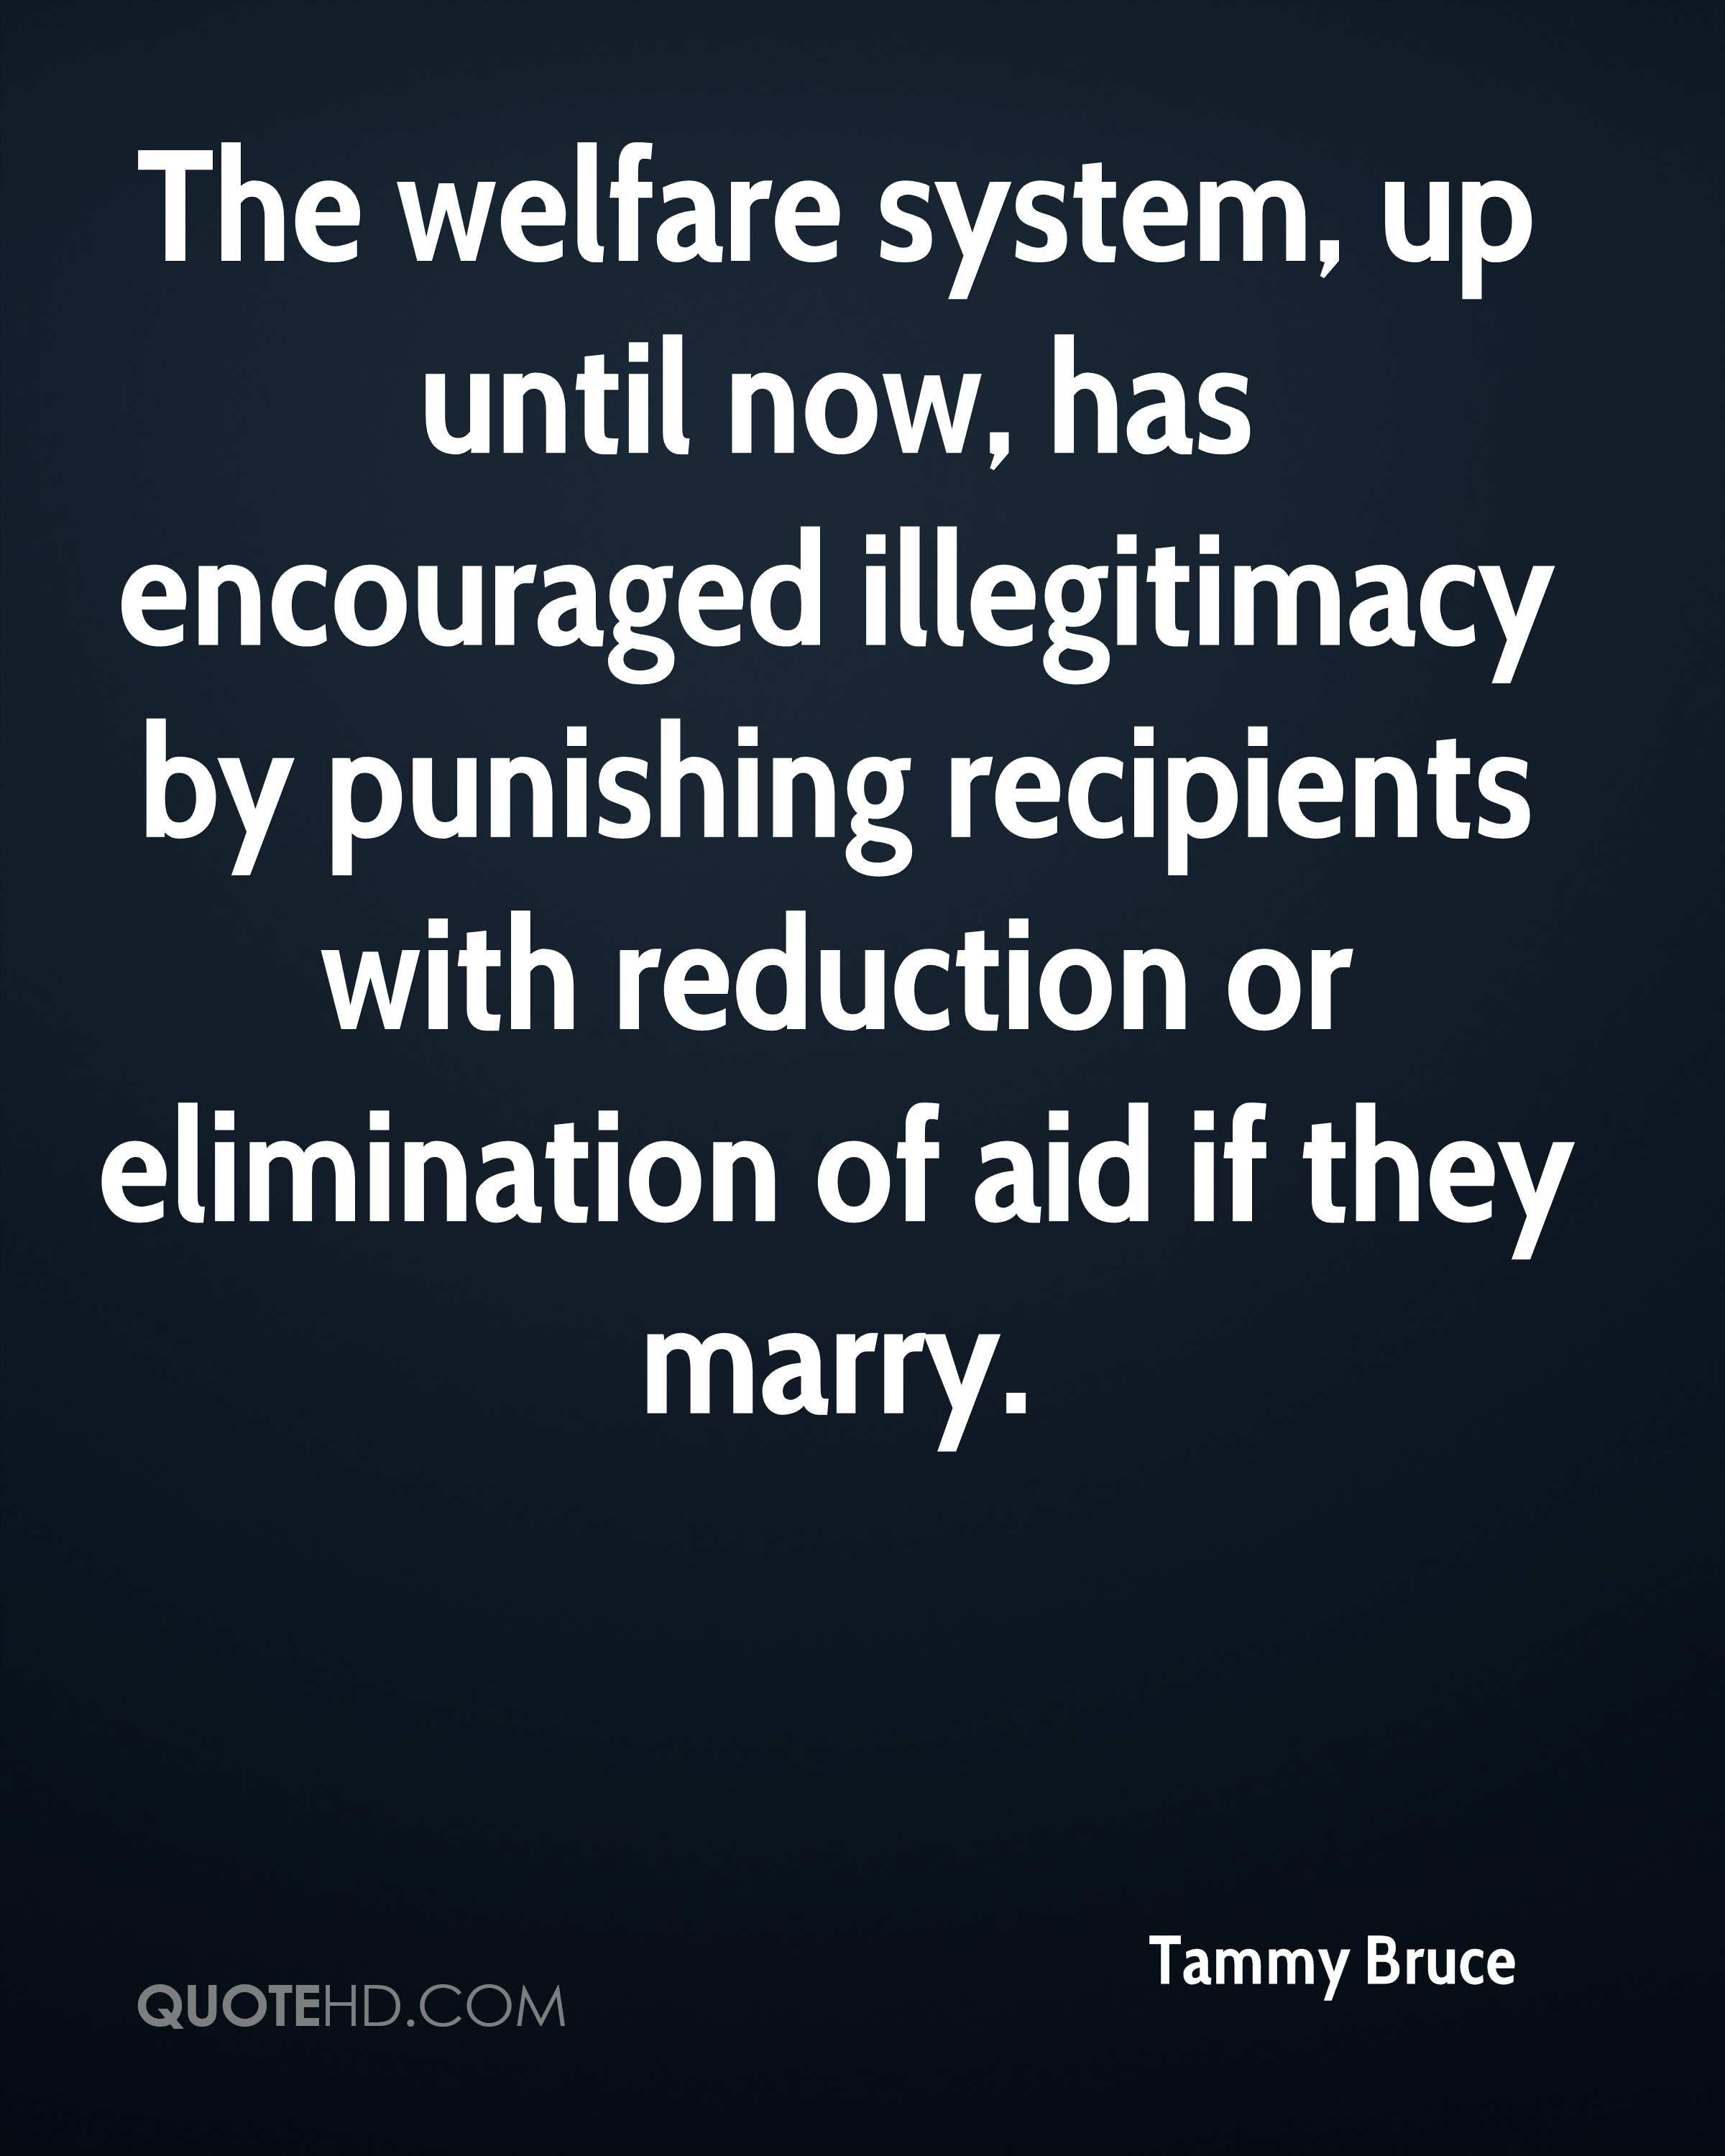 The welfare system, up until now, has encouraged illegitimacy by punishing recipients with reduction or elimination of aid if they marry.